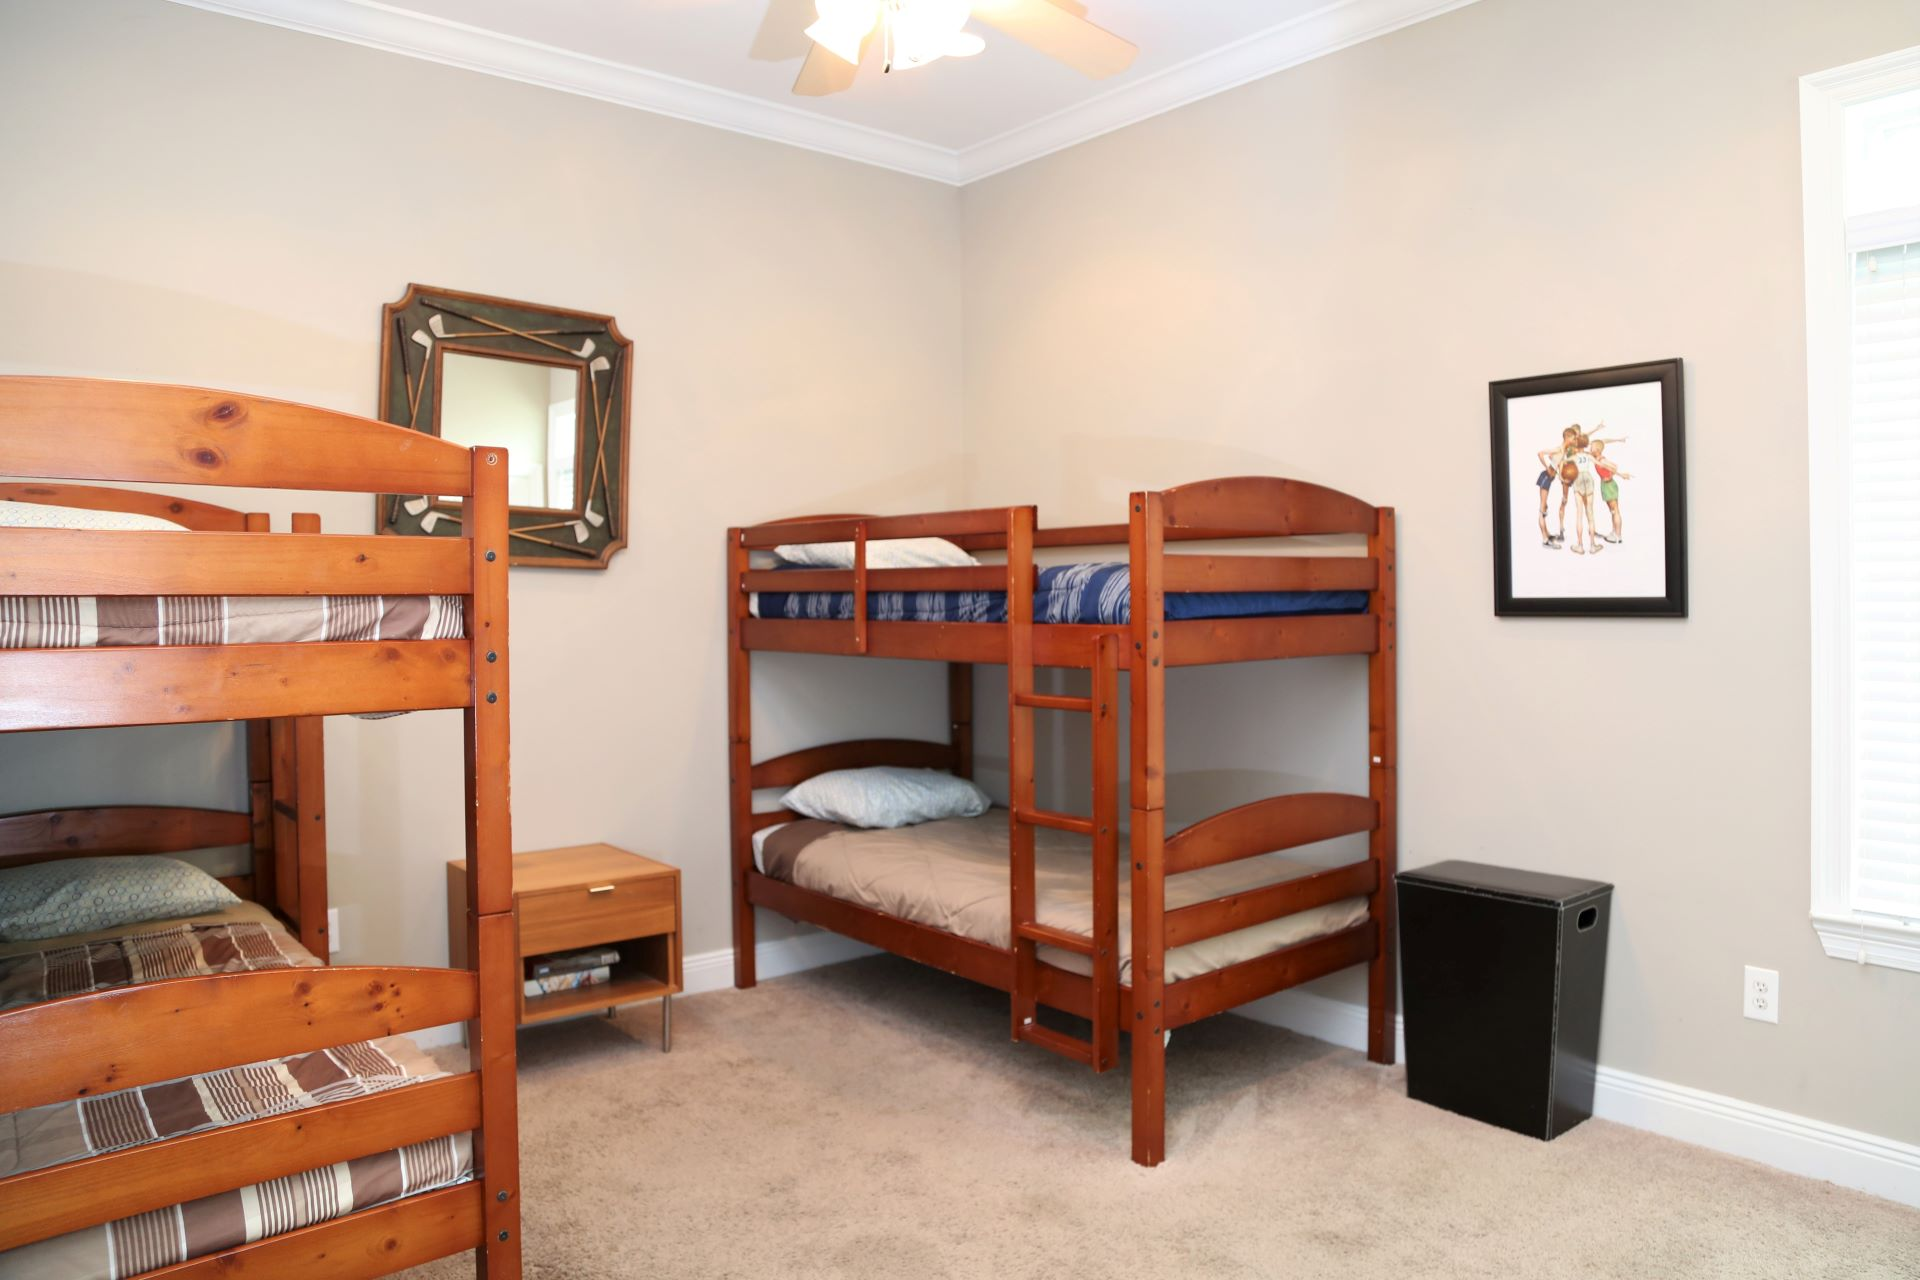 The second bedroom includes two sets of twin bunk beds.